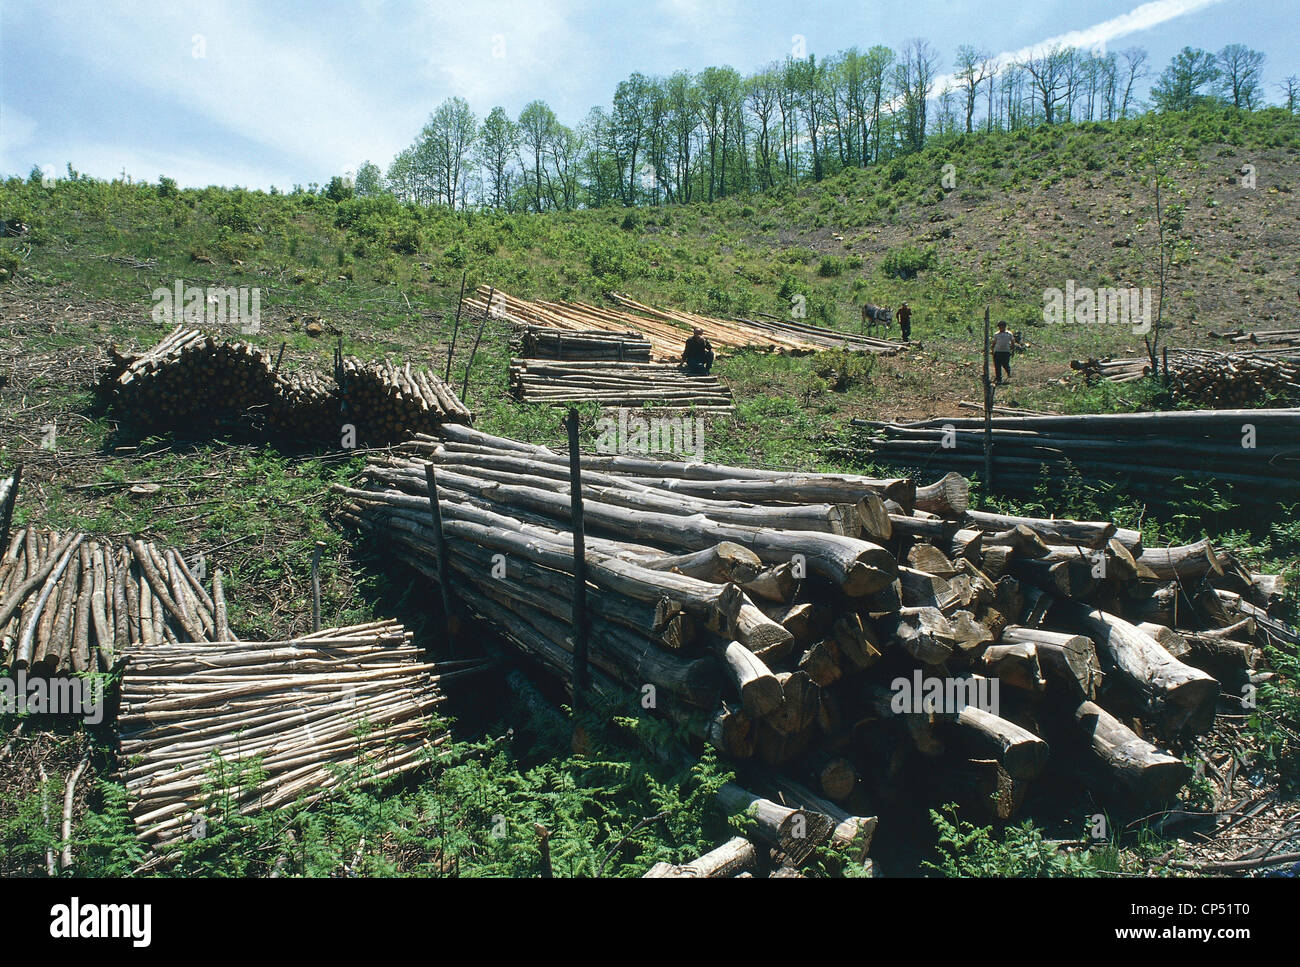 Calabre - Sila Piccola (Cz). La déforestation. Photo Stock